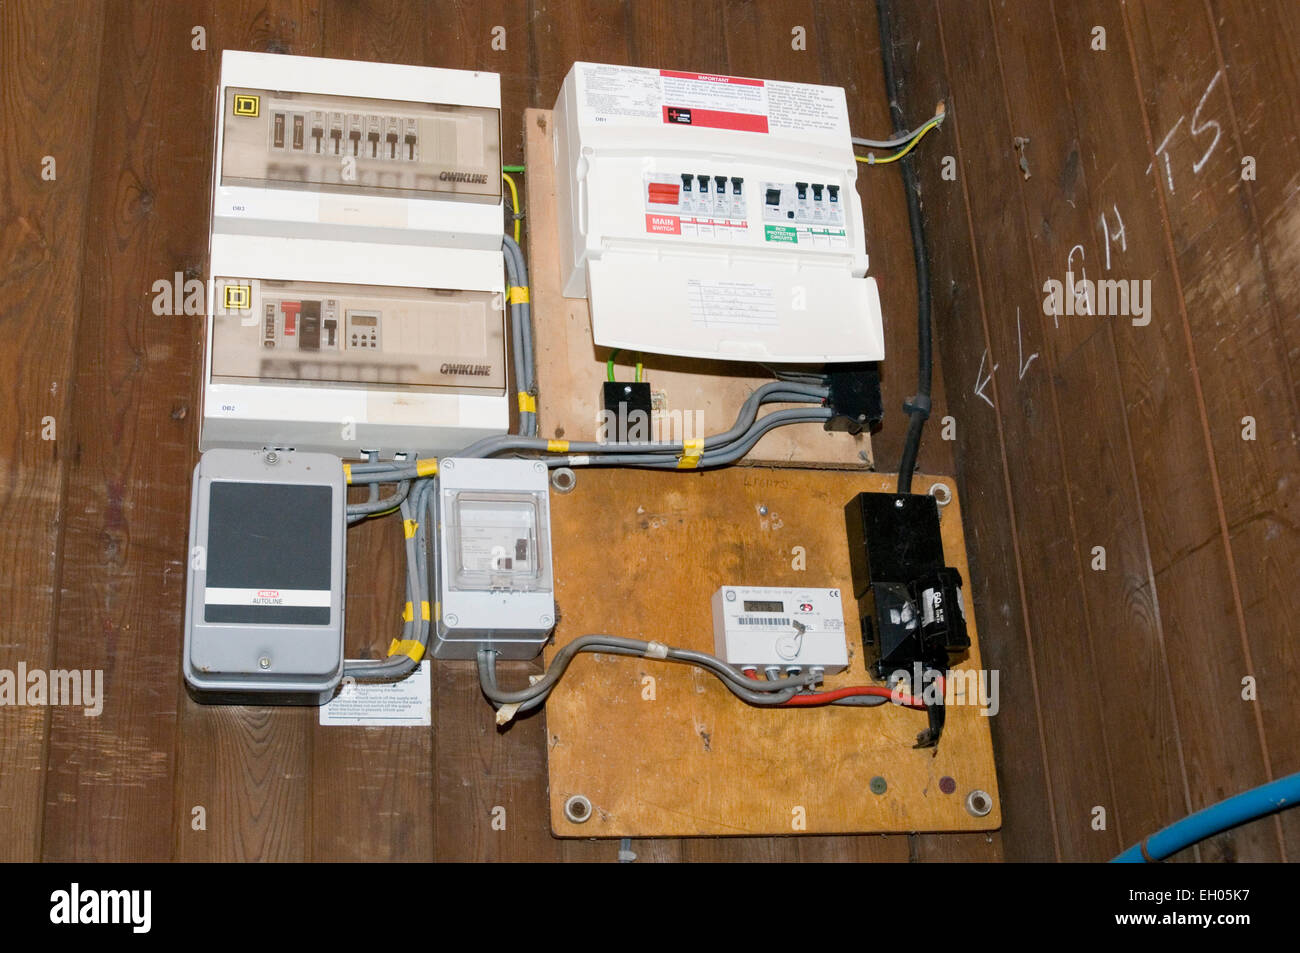 hight resolution of circuit board fuses fuse boards breaker breakers panel panels wiring household building electrician electricians stock